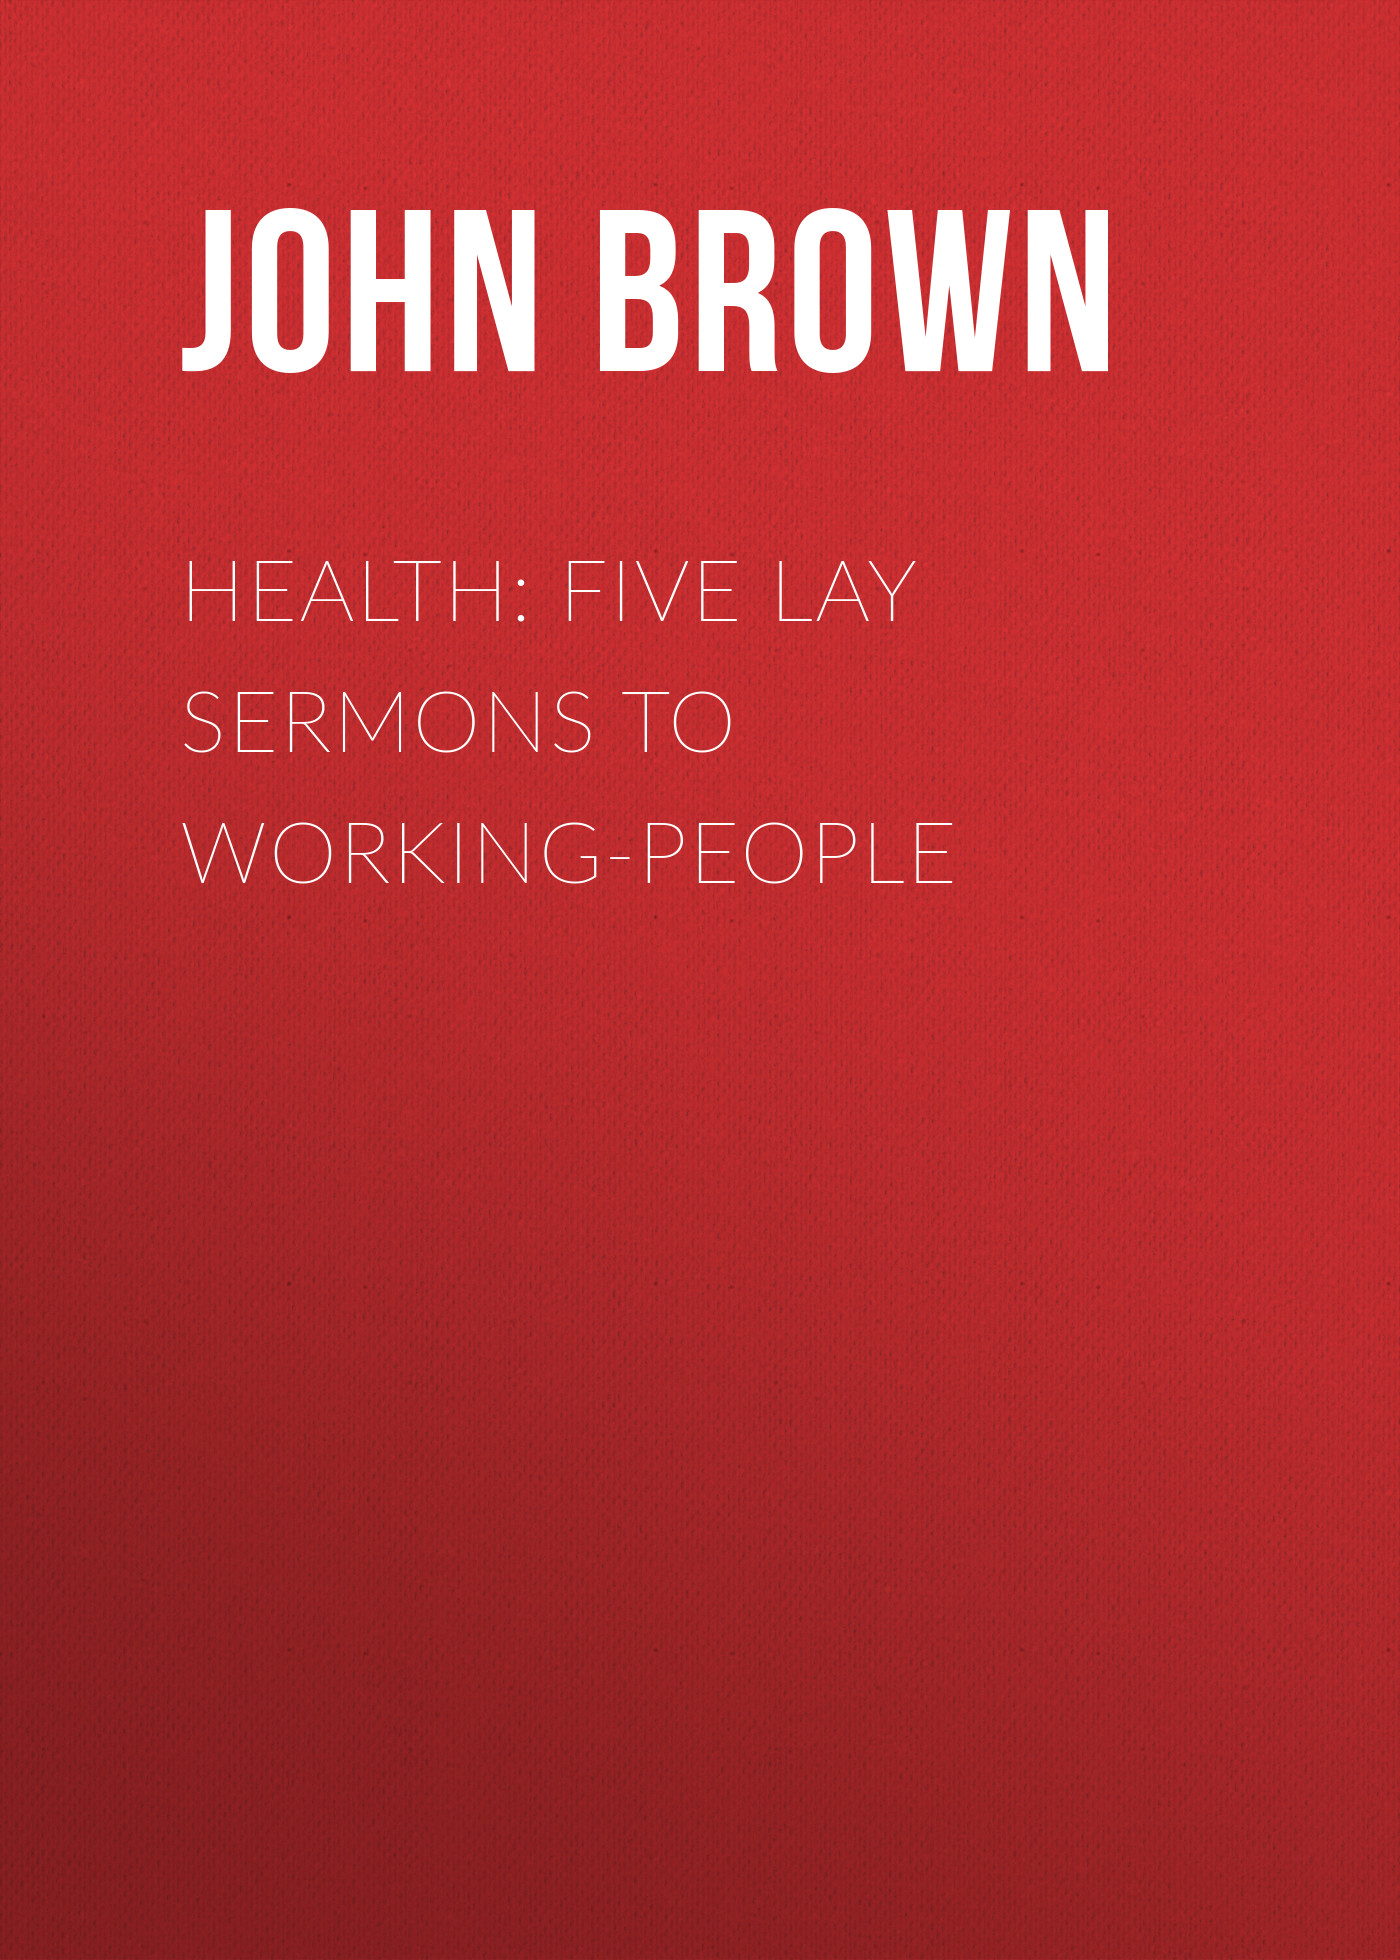 Brown John Health: Five Lay Sermons to Working-People simple strong wall sucker five people toothbrush holder